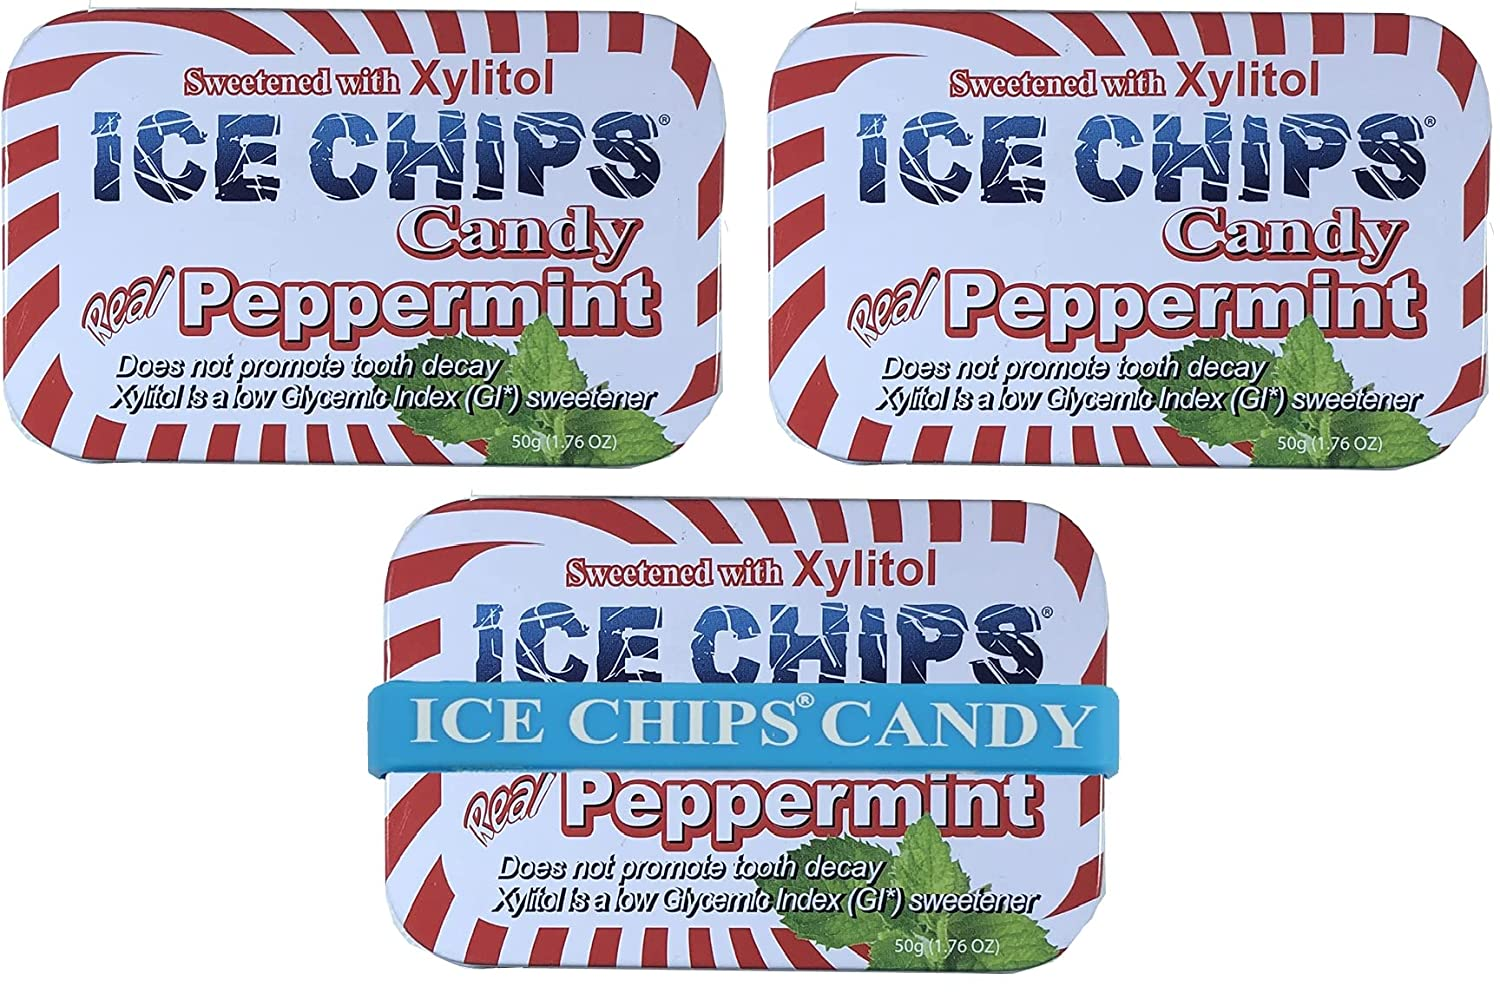 2021 autumn and winter new San Antonio Mall ICE CHIPS Xylitol Candy Tins Peppermint Pack BAN - Includes 3